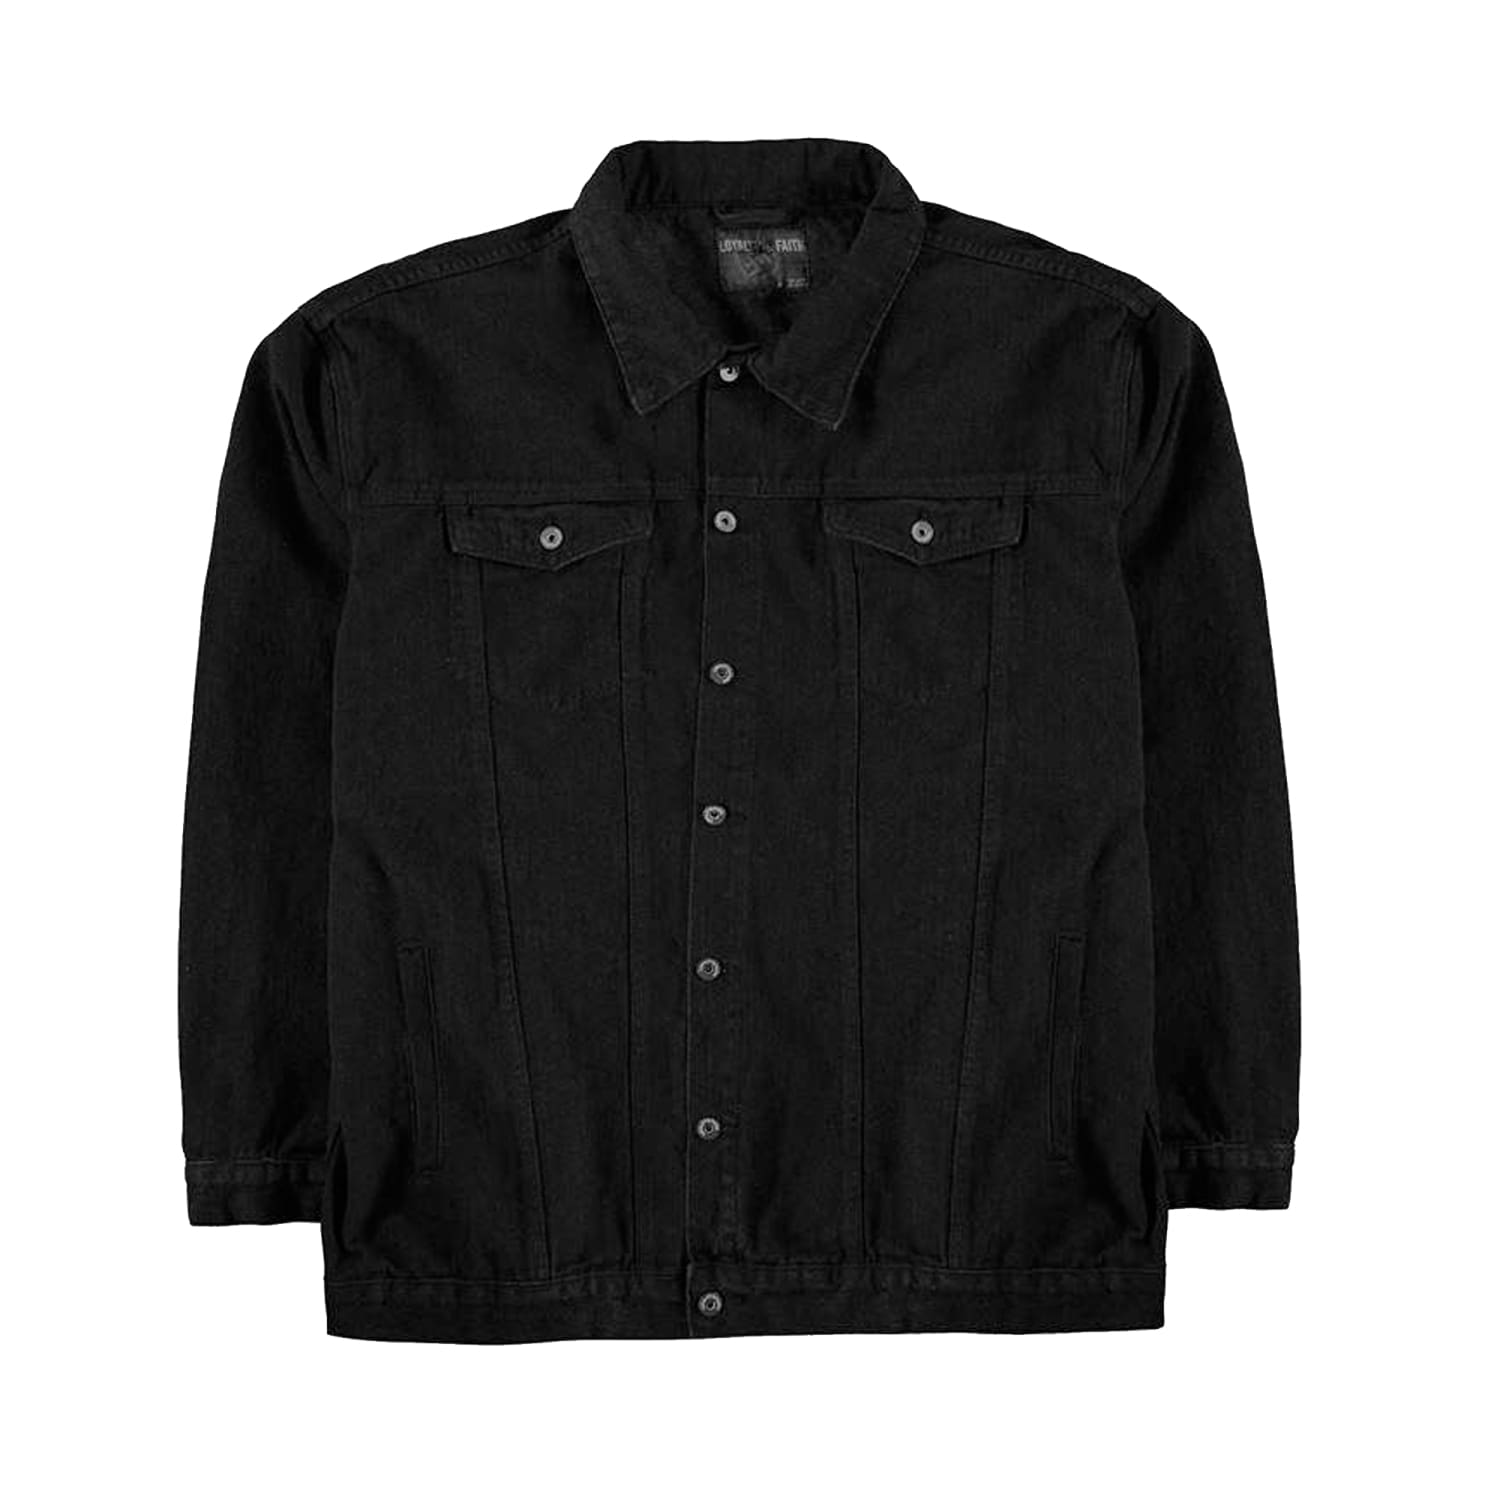 Loyalty & Faith Denim Jacket - L601486 - Rocket - Black 1